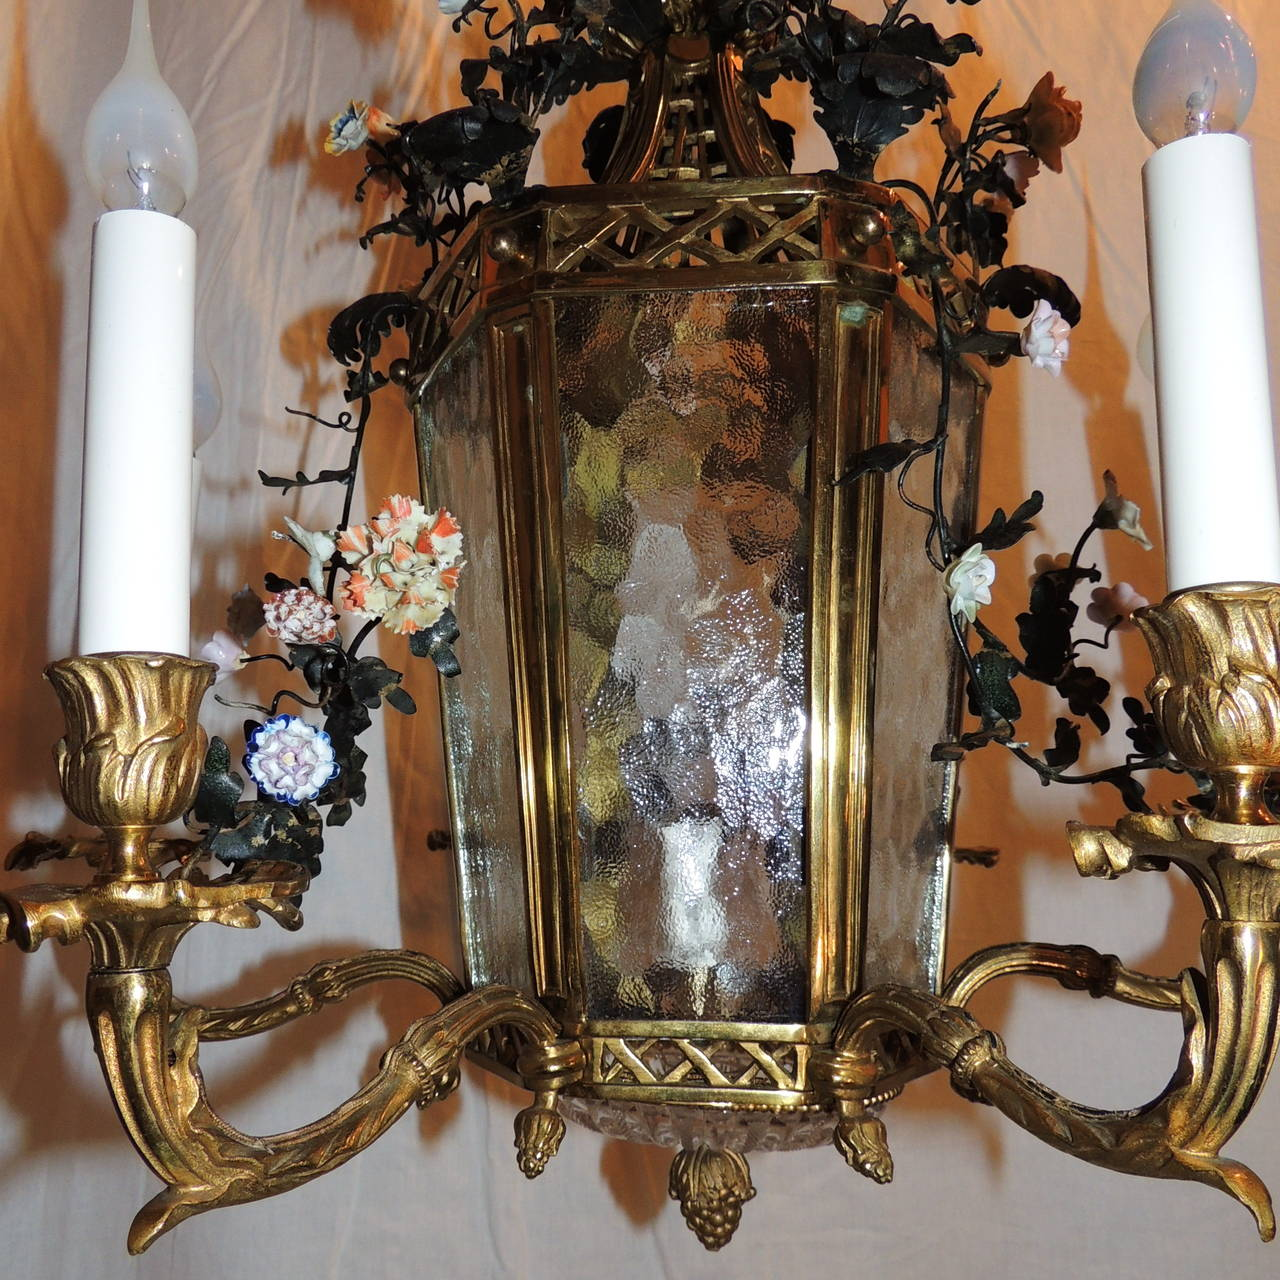 Wonderful French Dore Bronze Five-Light Lantern Chandelier Porcelain Flowers For Sale 2